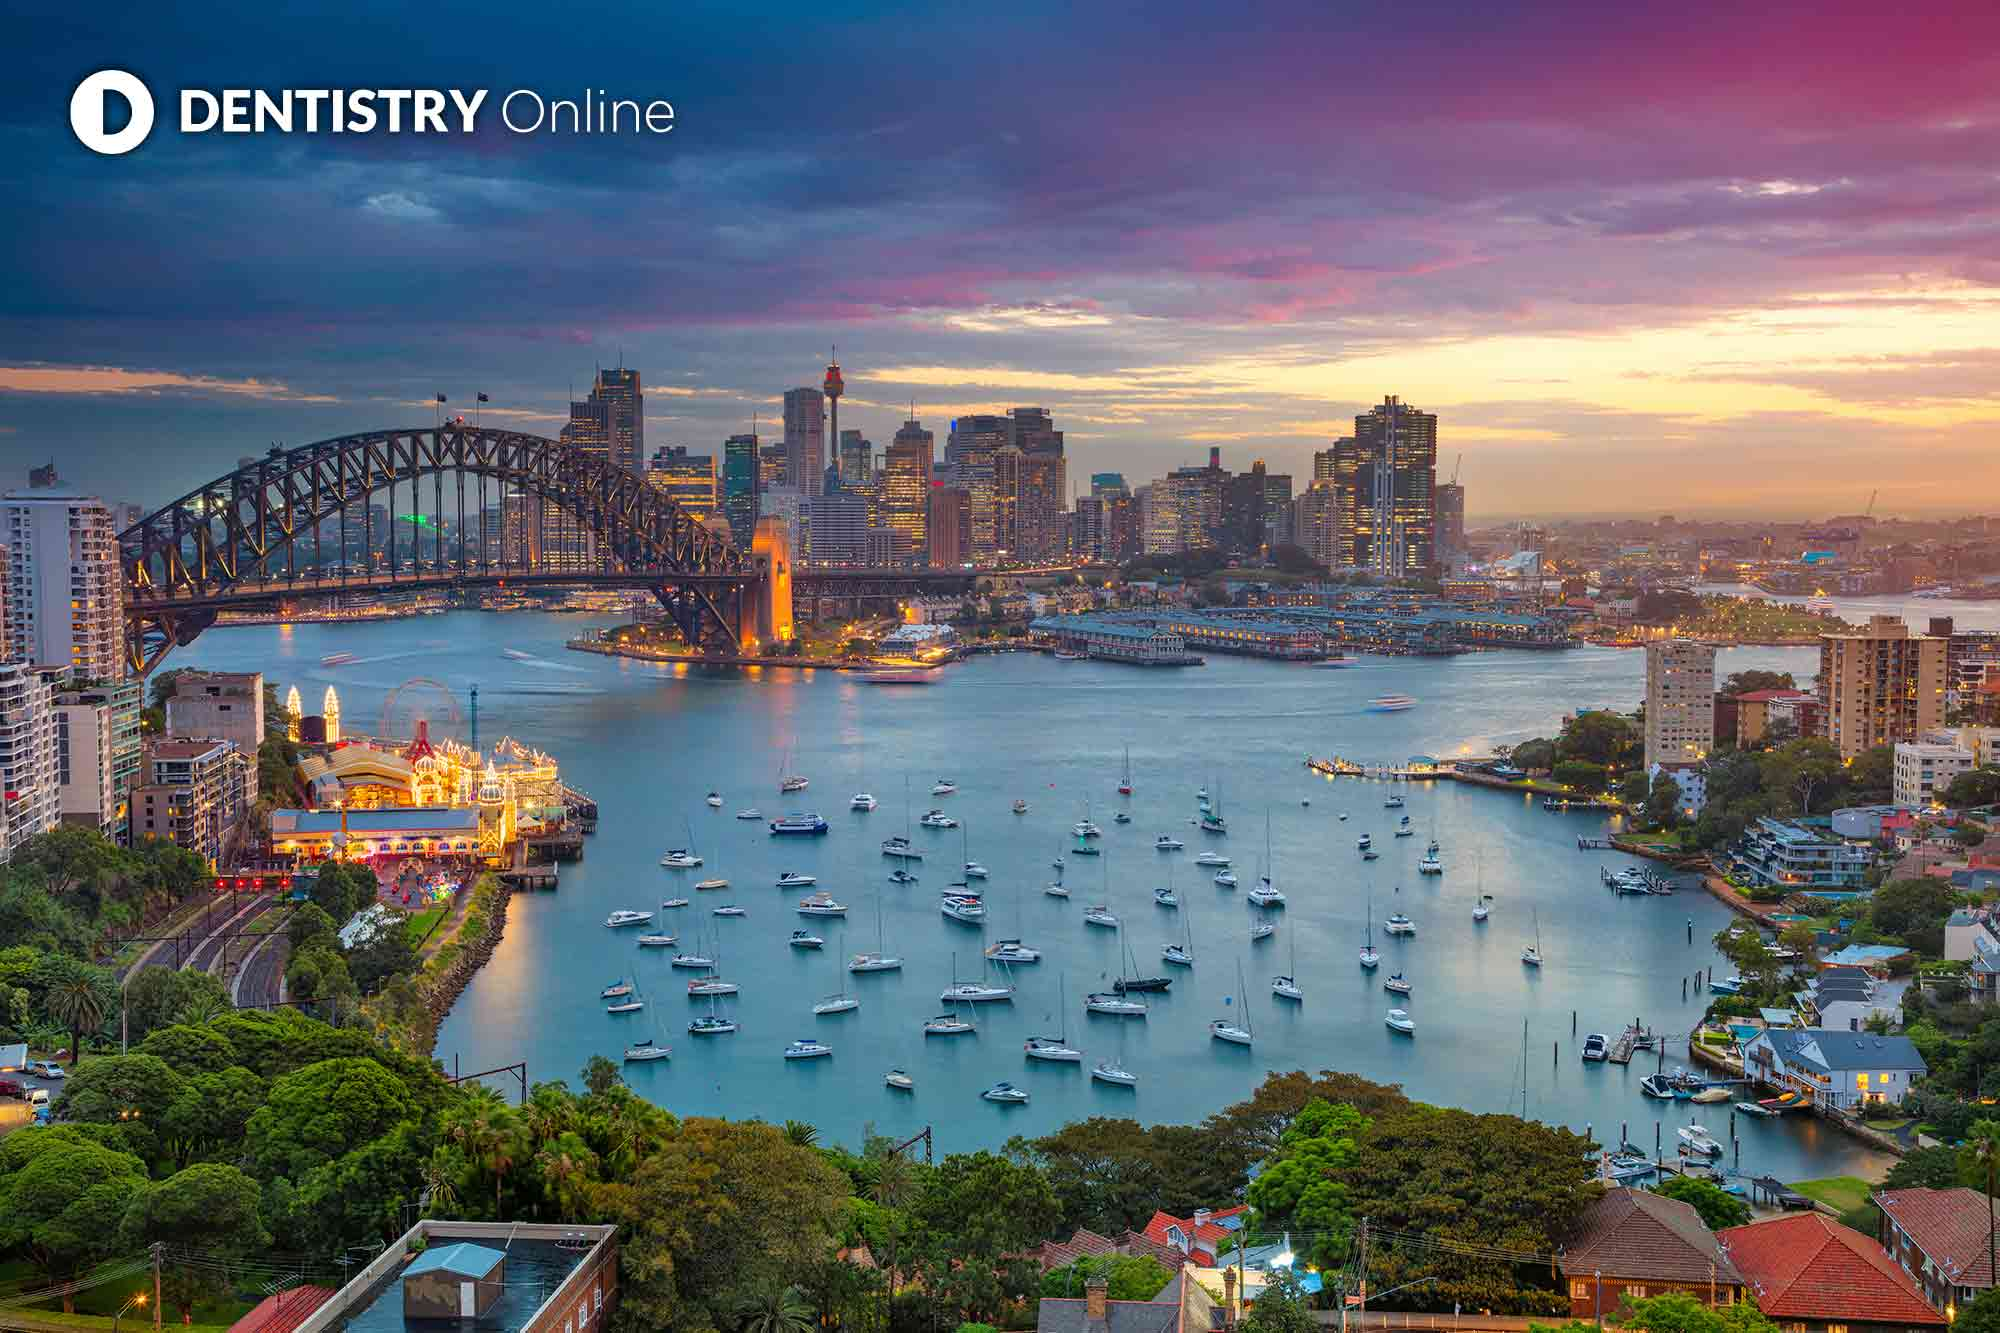 Derek Mahony, a specialist orthodontist based in Sydney, Australia, discusses how COVID-19 has shaken up dentistry Down Under